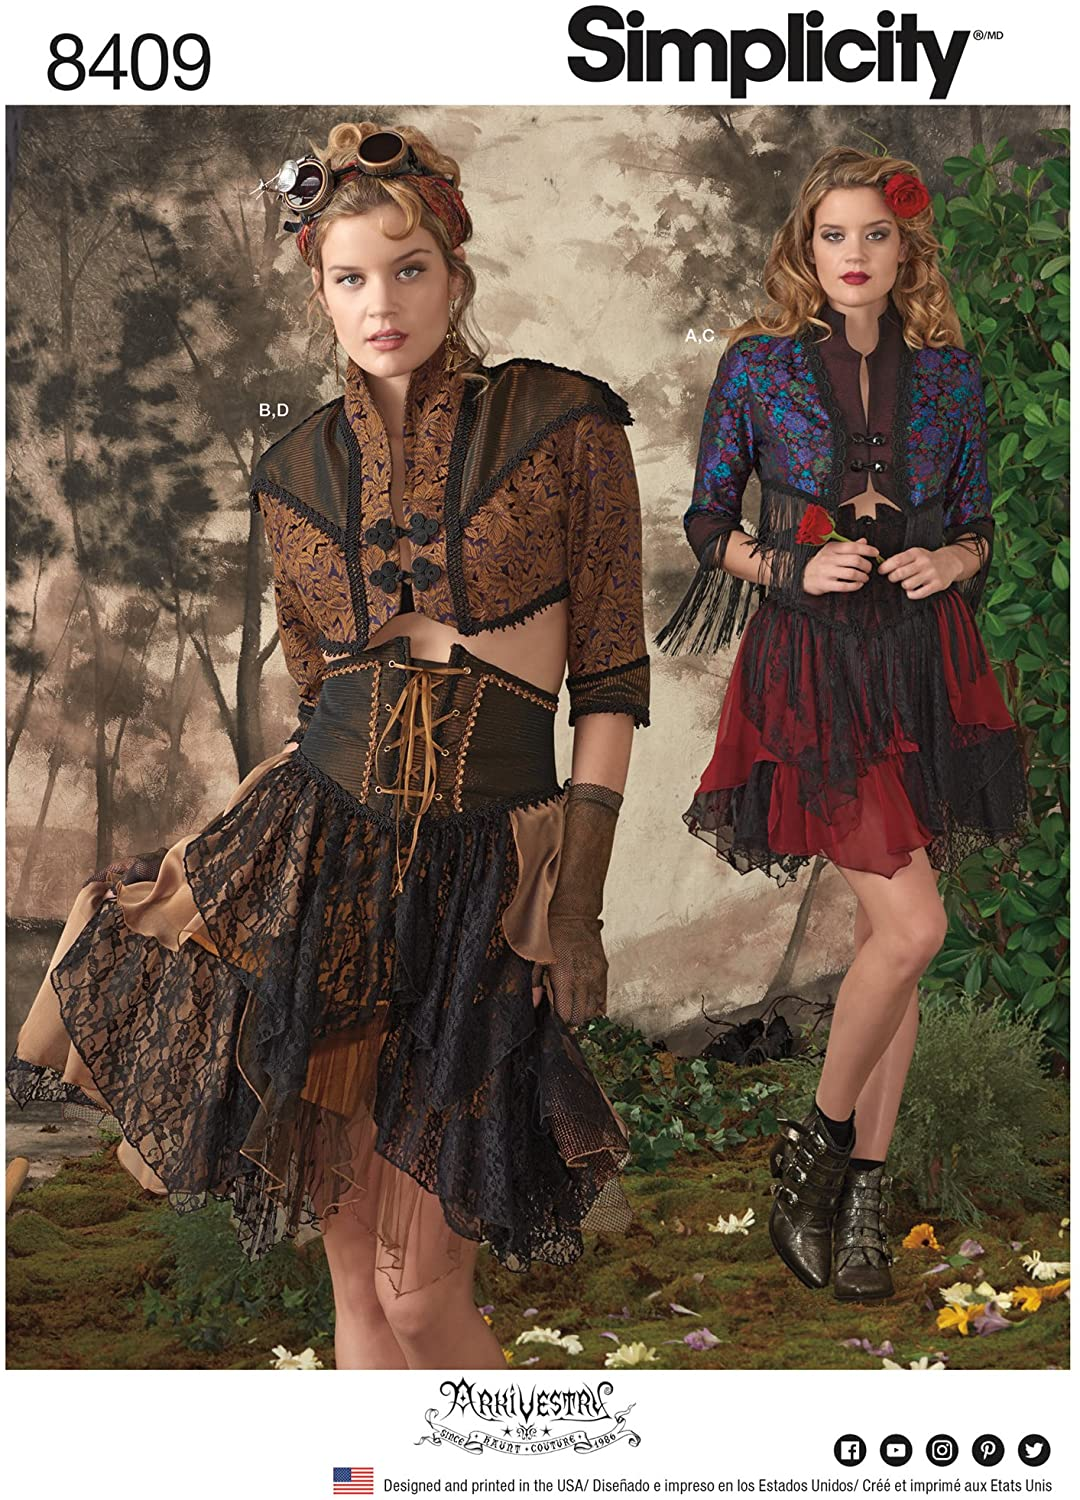 Simplicity 8409 Women's Western Steampunk Costume Cosplay Sewing Pattern, Sizes 14-22